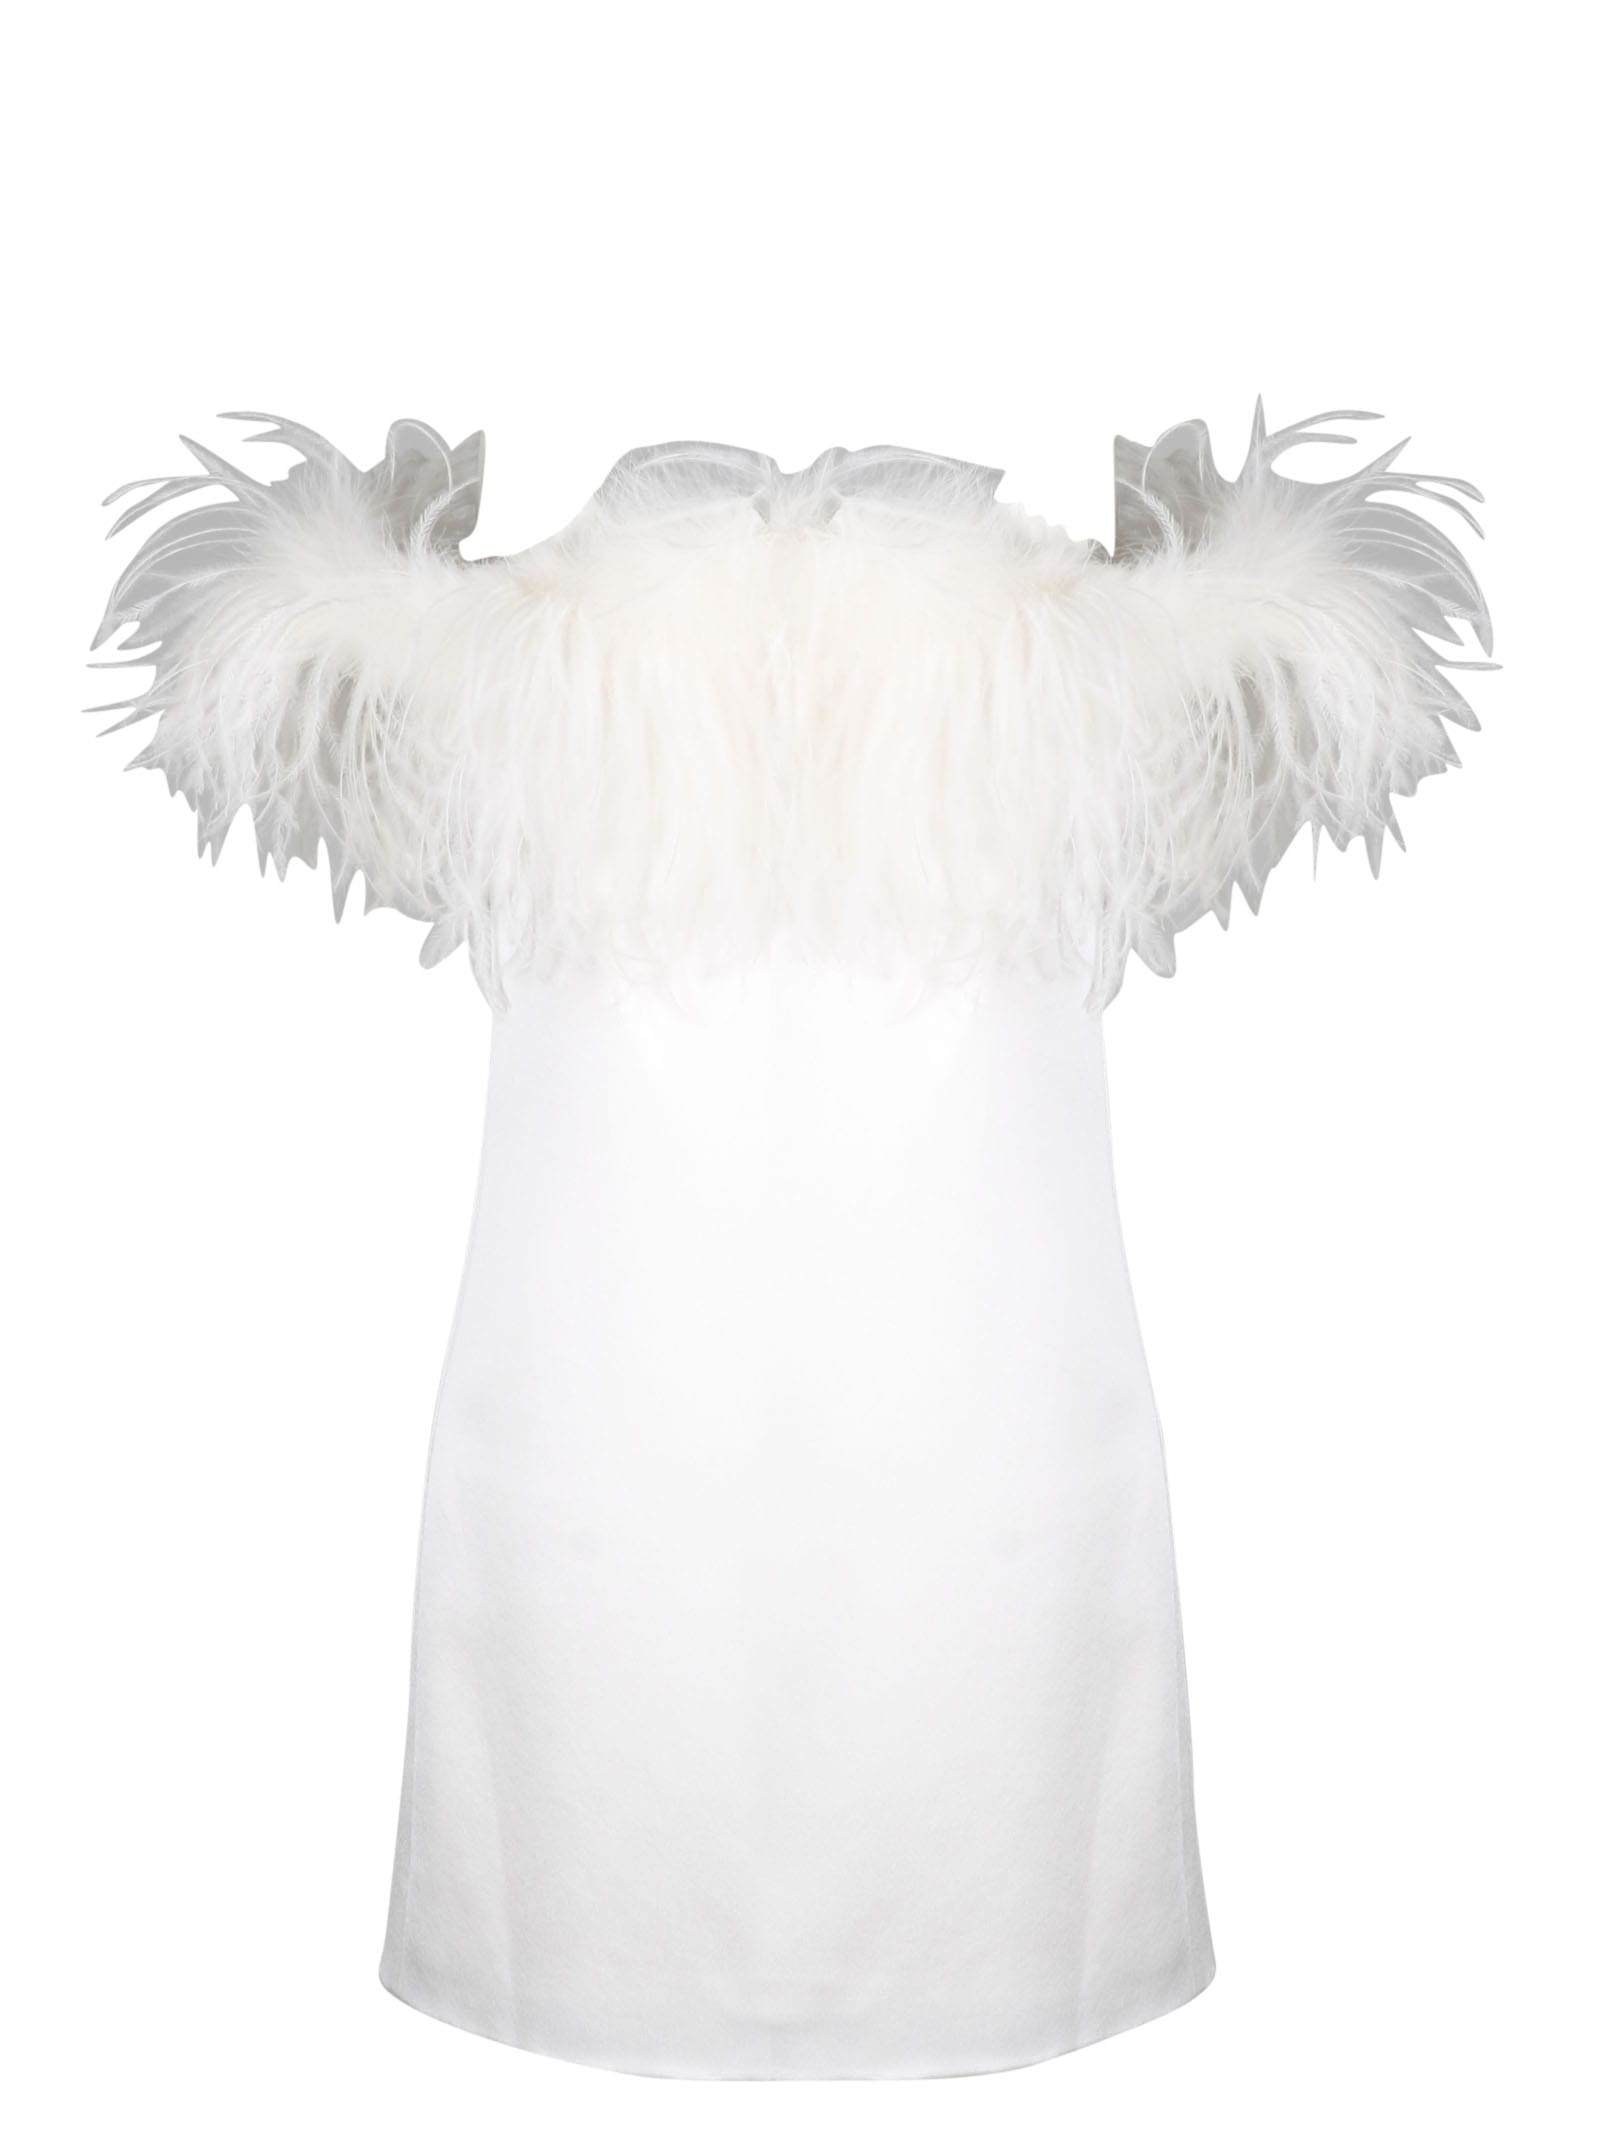 Buy Saint Laurent Mini Dress With Feathers online, shop Saint Laurent with free shipping